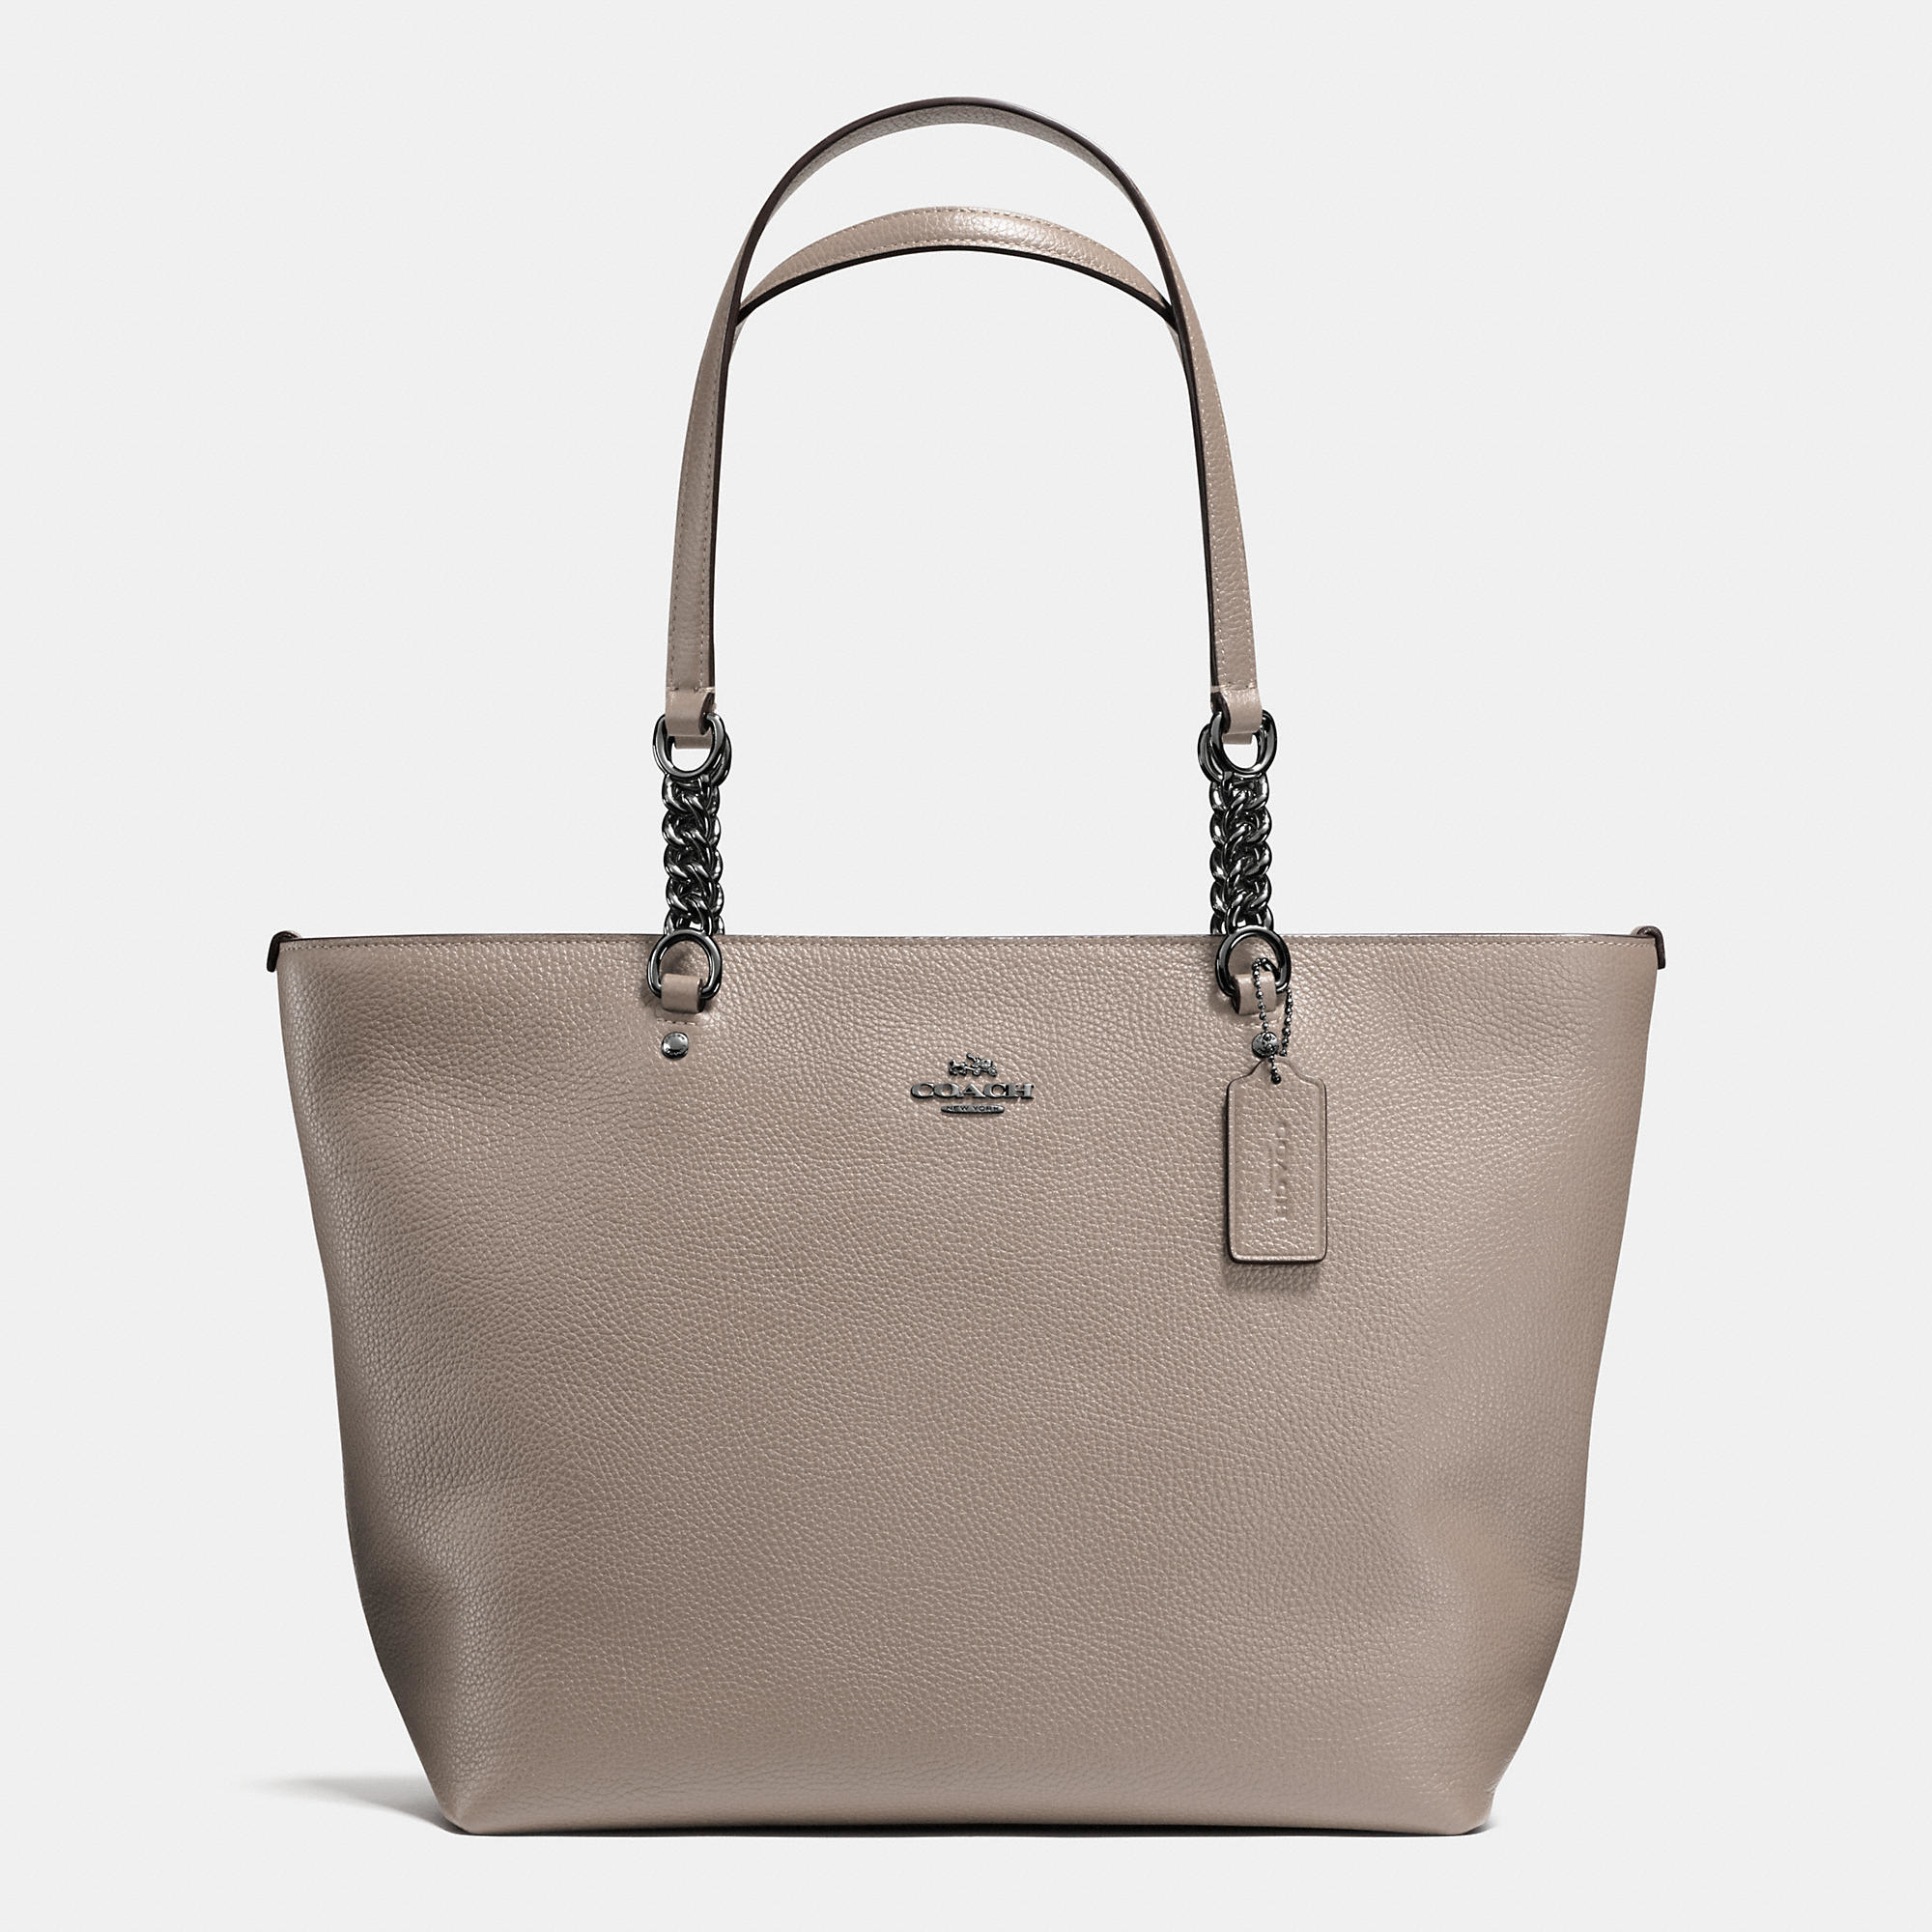 6d85bde157 Lyst - COACH Sophia Tote In Pebble Leather in Brown